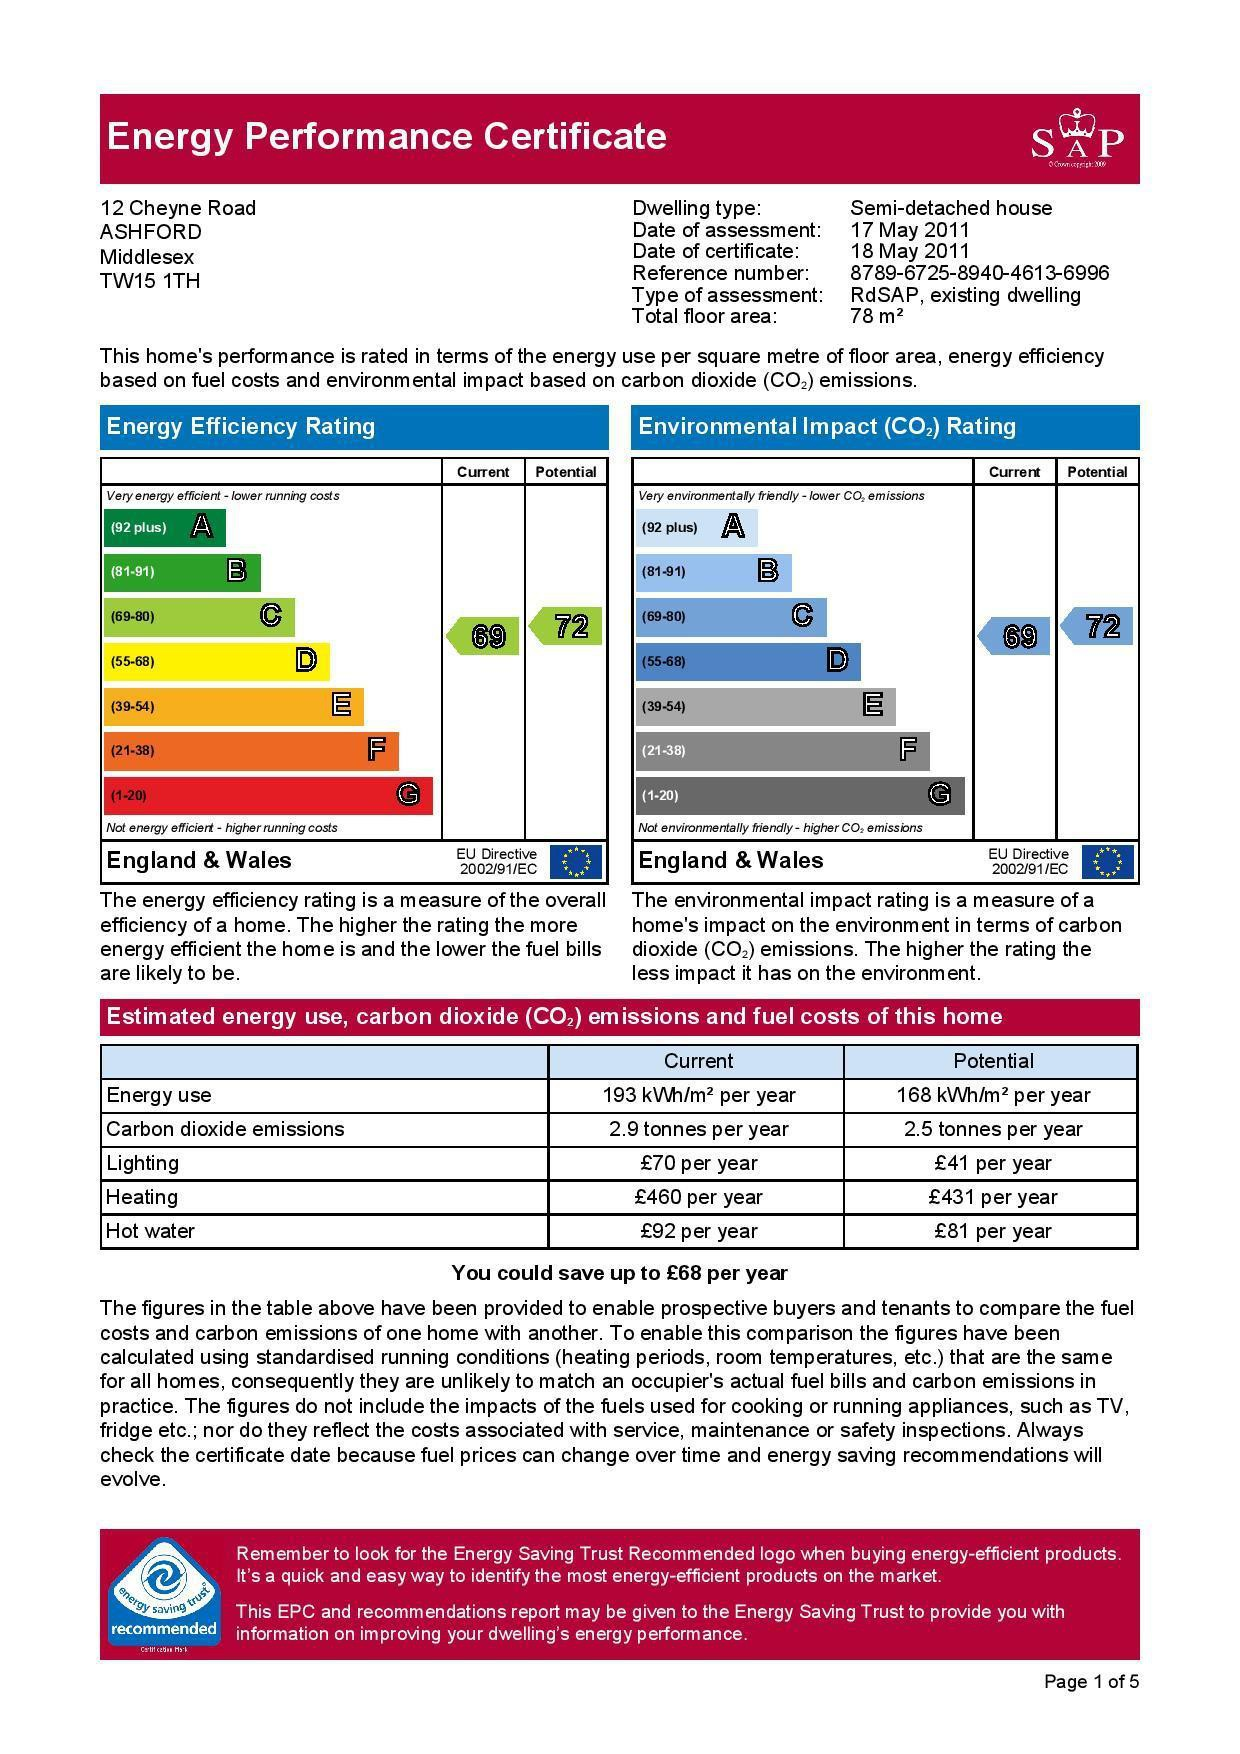 EPC Graph for 12 Cheyne Road, Ashford, Middlesex TW15 1TH